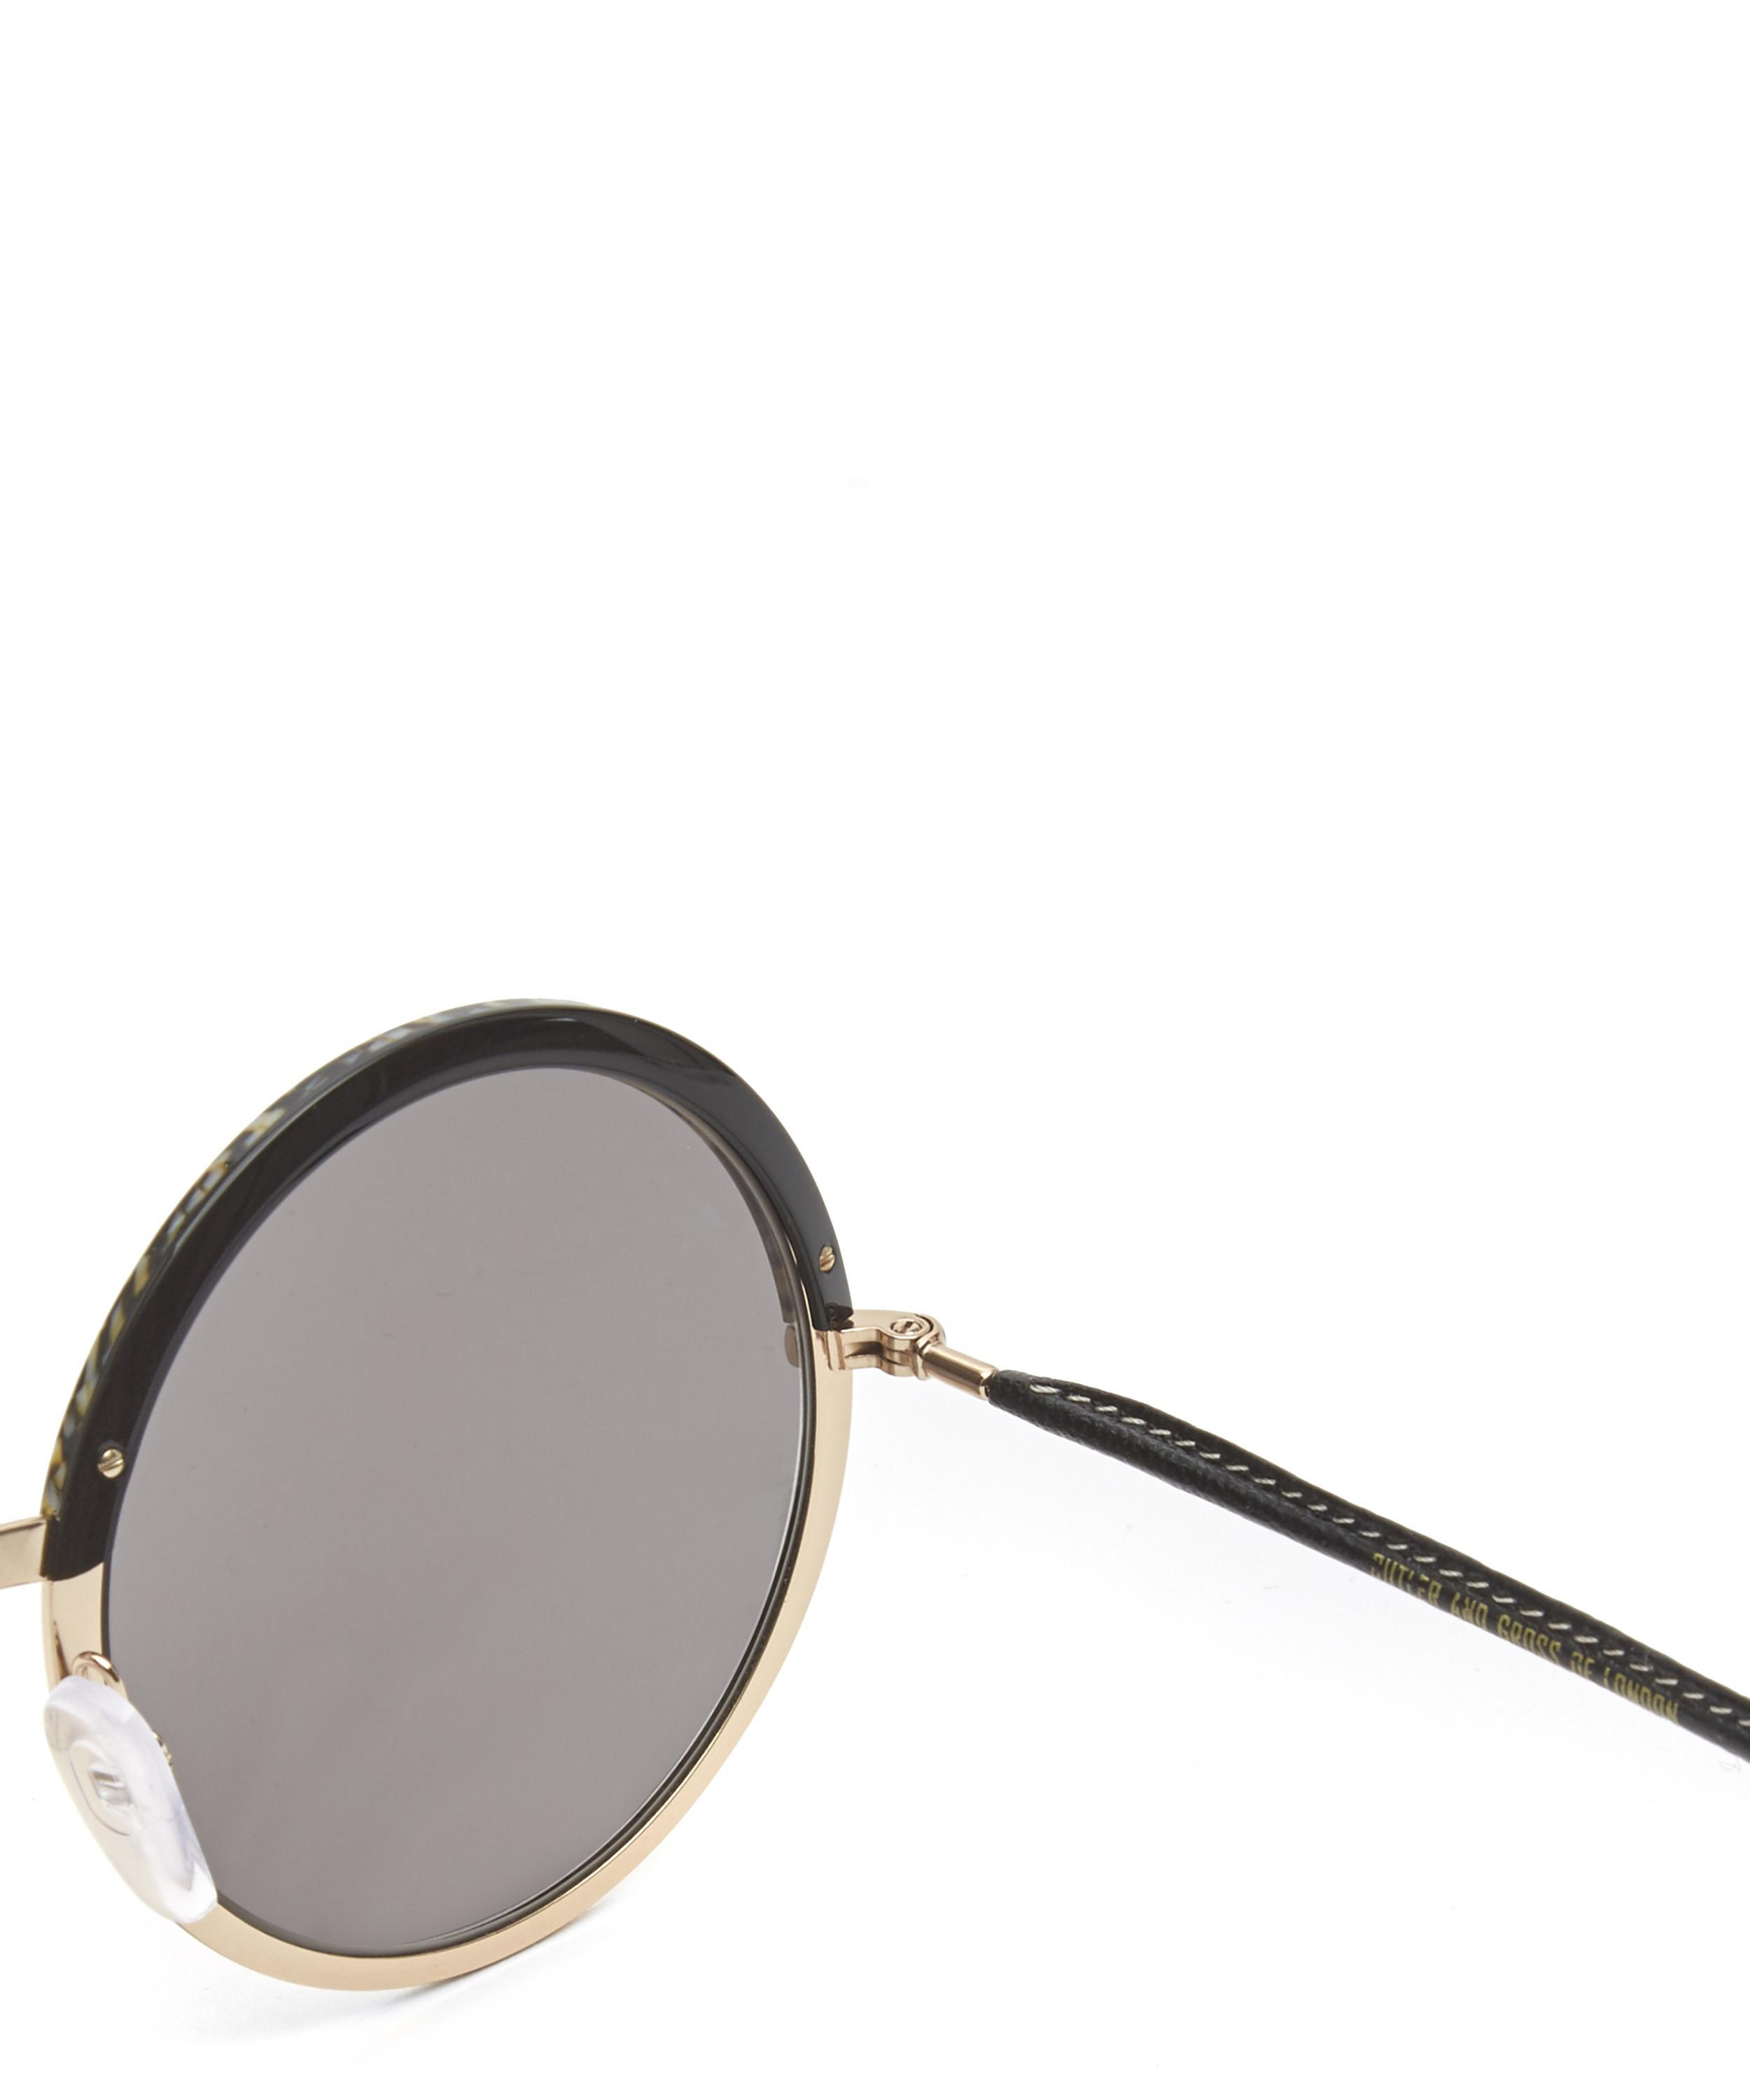 Cutler & Gross Round Leather Arm Sunglasses in Black